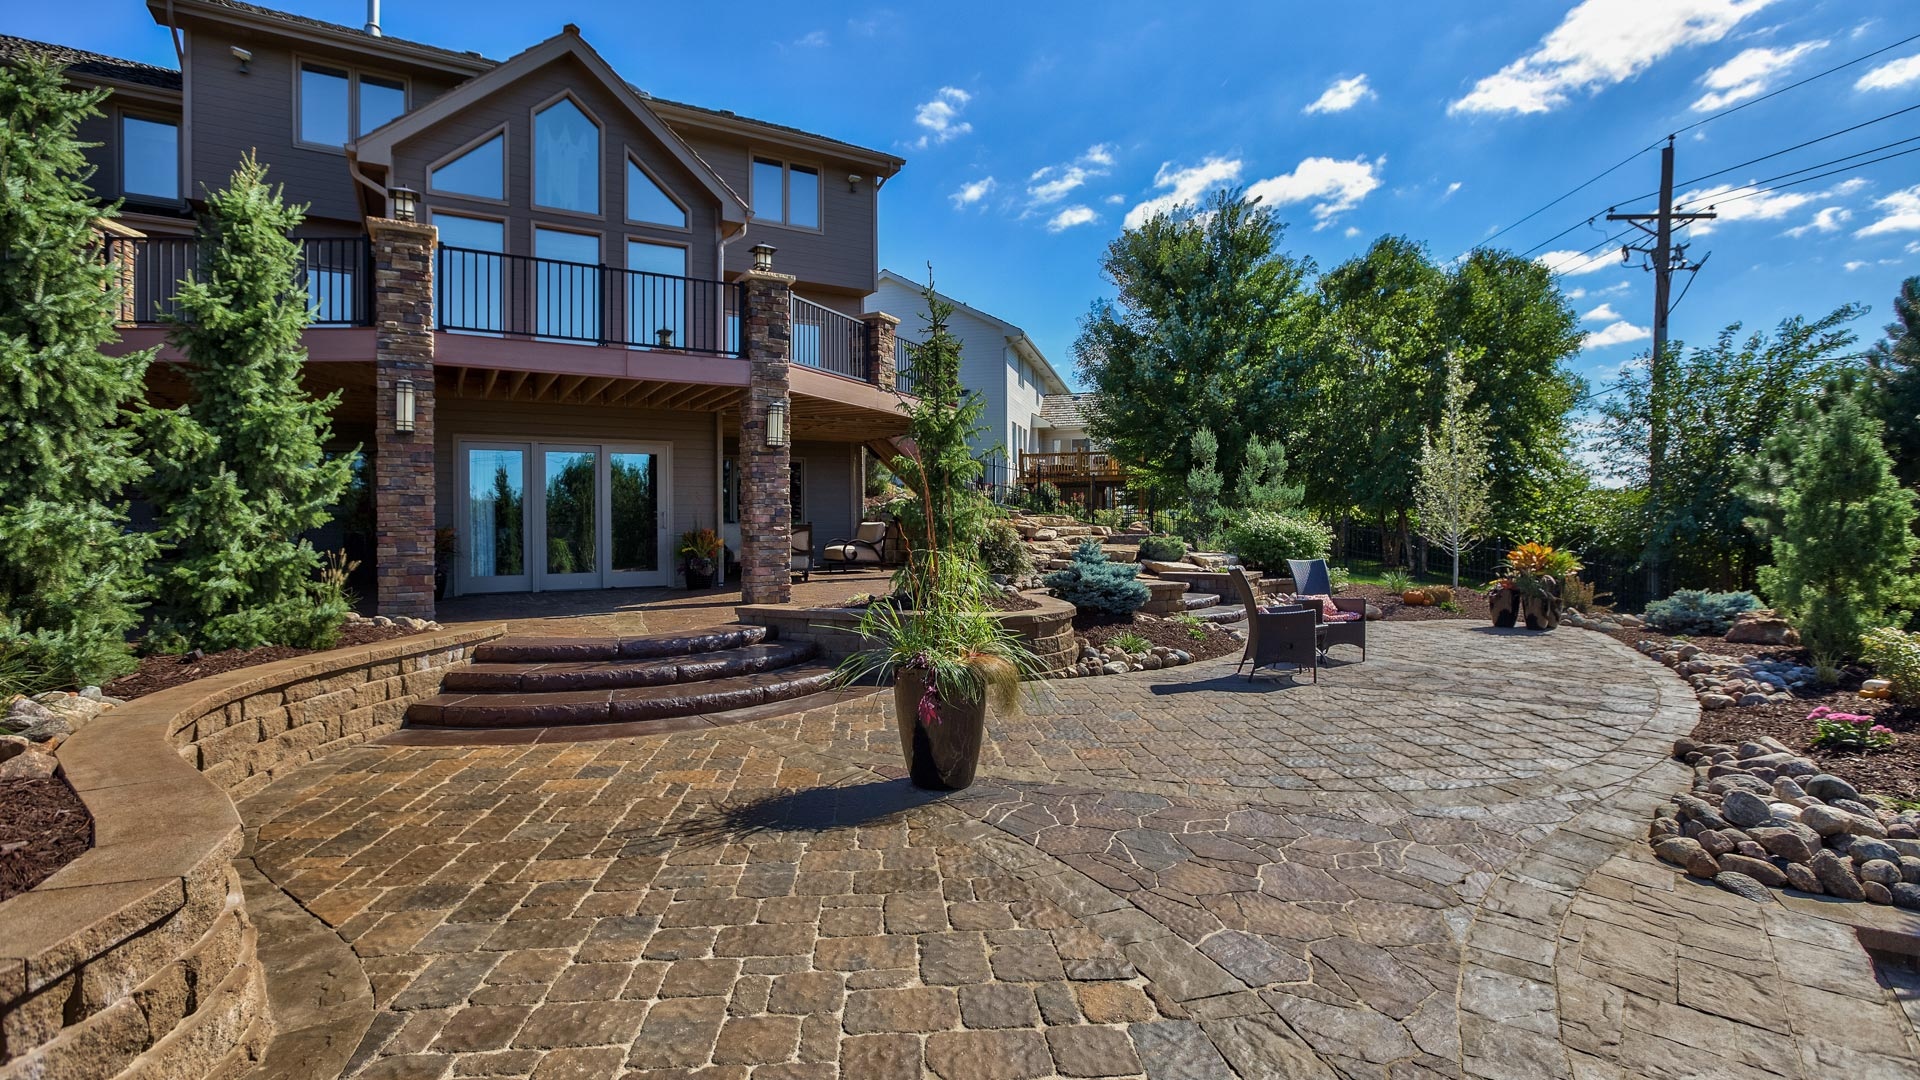 A large paved patio with steps and retaining walls nearby a home in Papillion, NE.